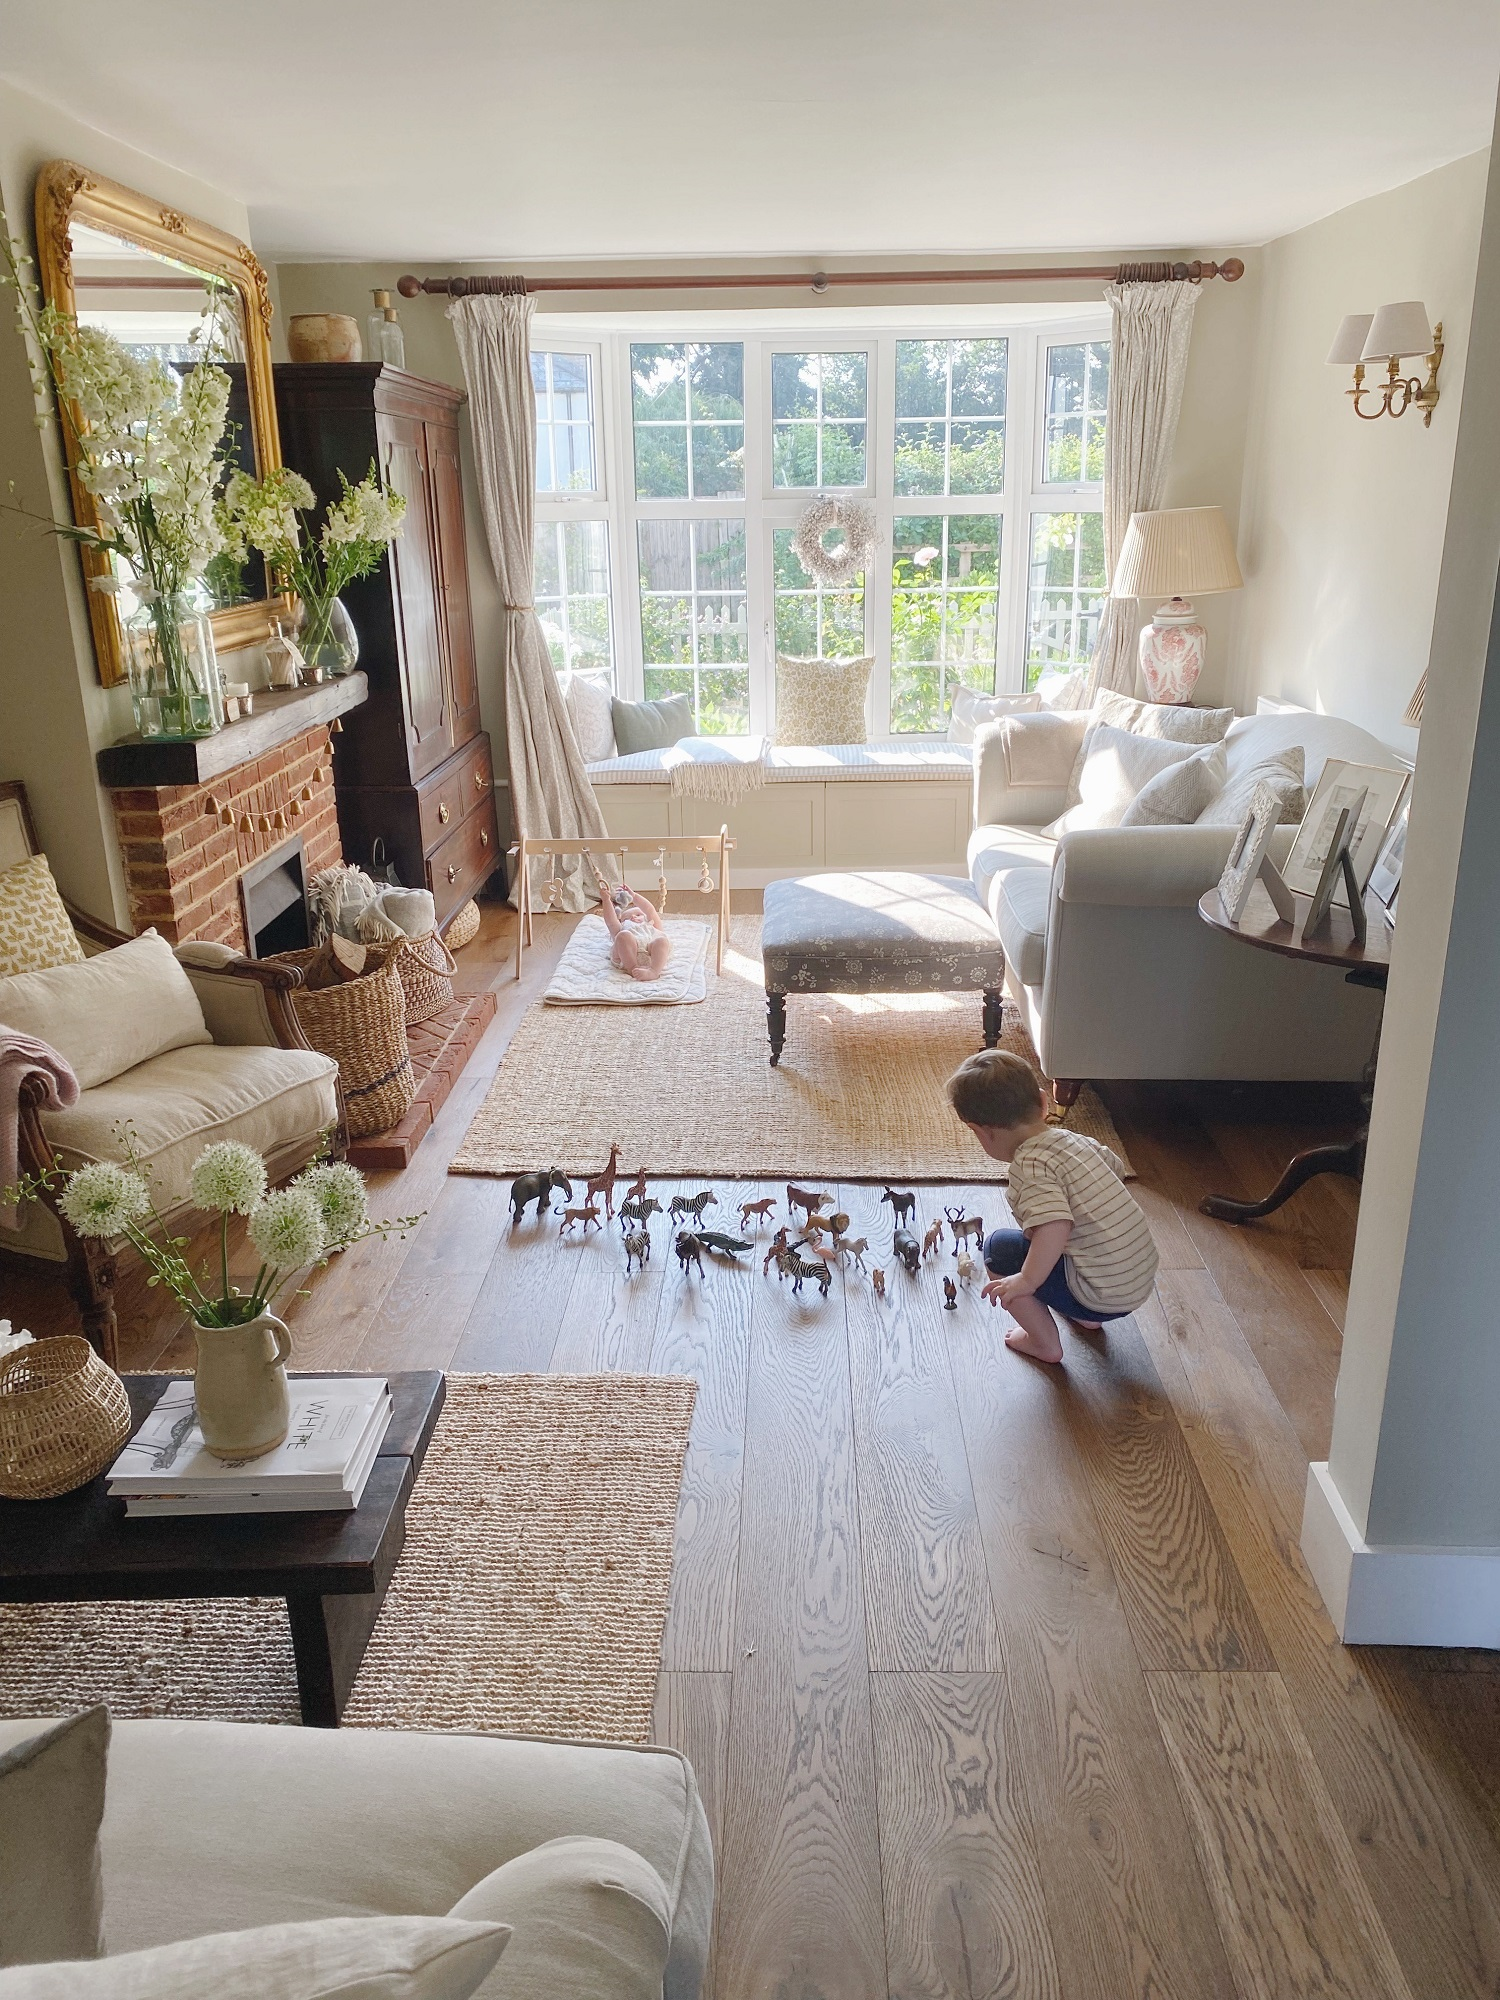 The cottage living room